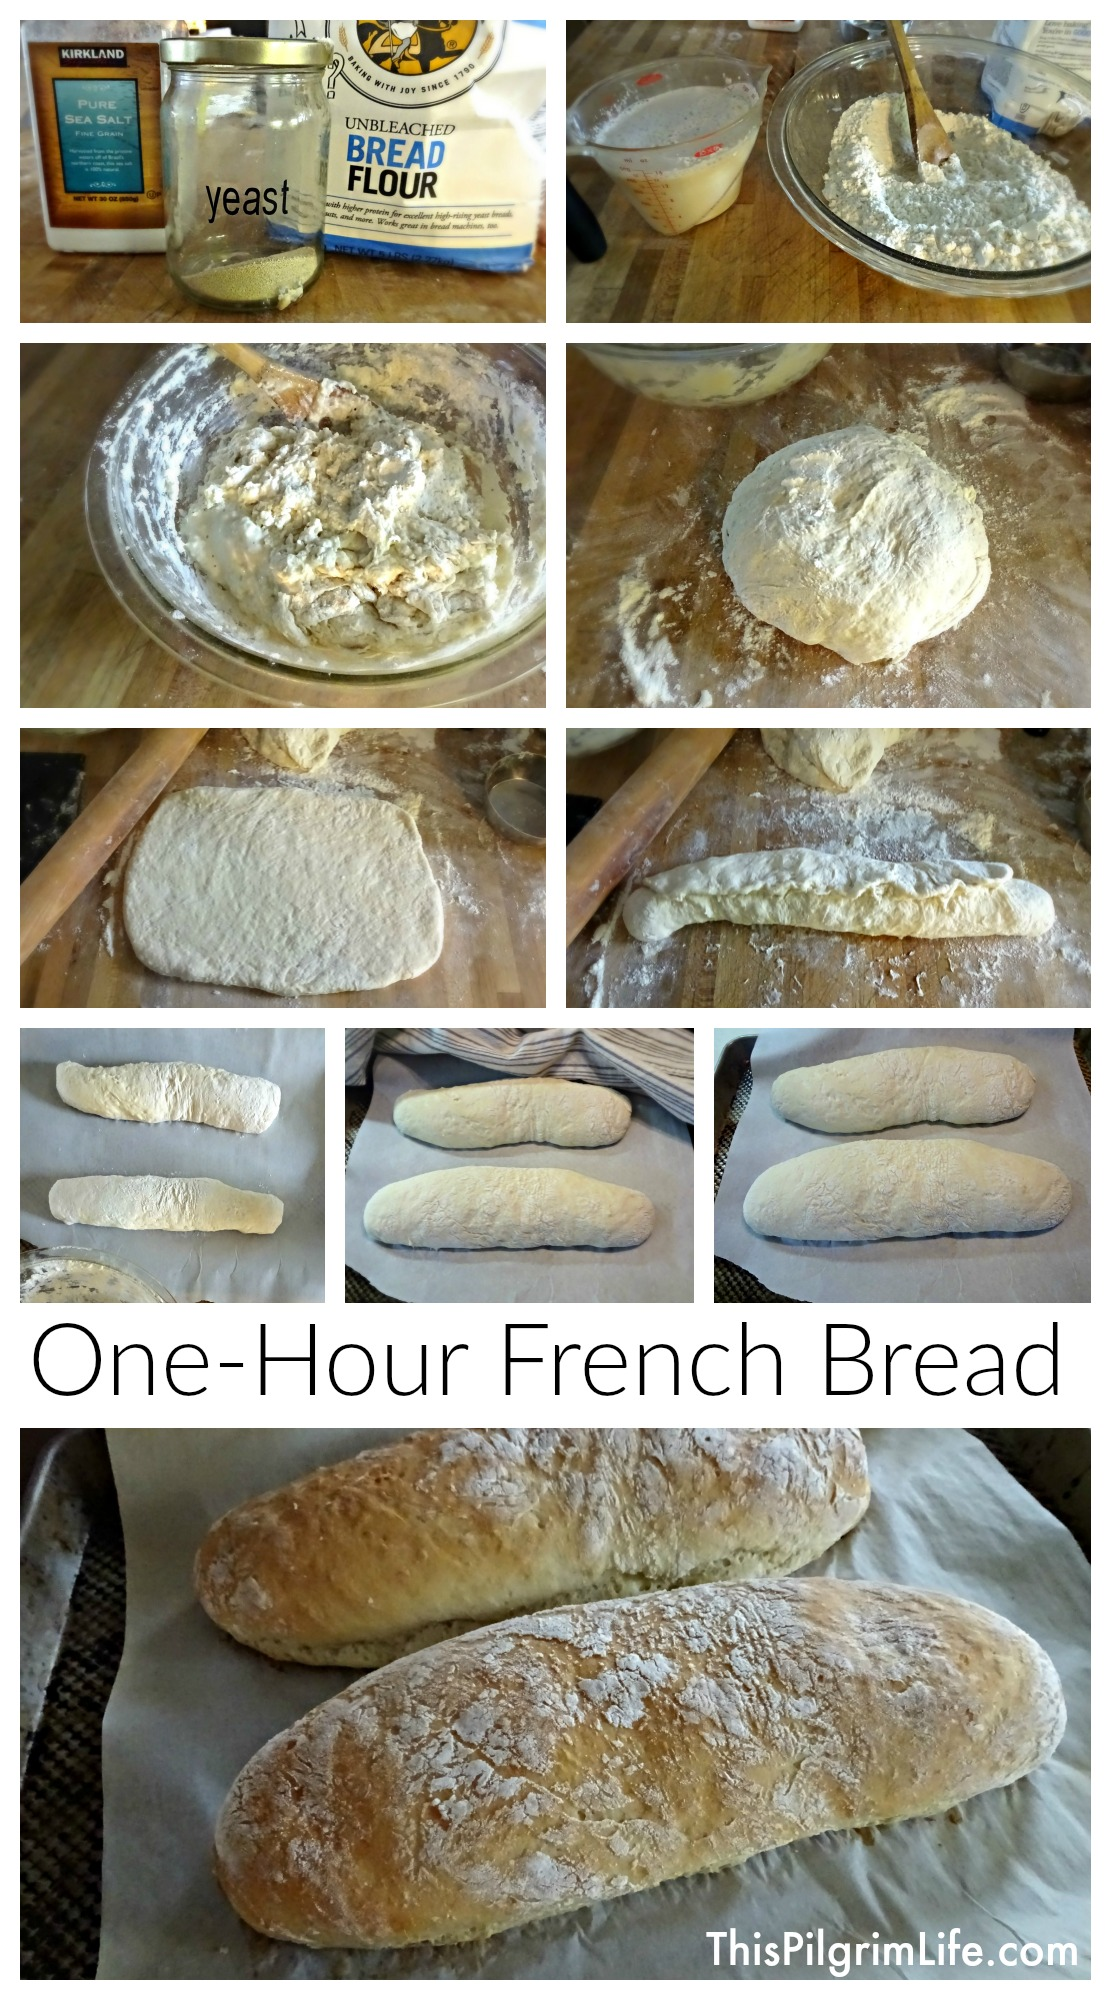 Fresh, warm French bread in just one hour? Four ingredients and two loaves? Yes please!